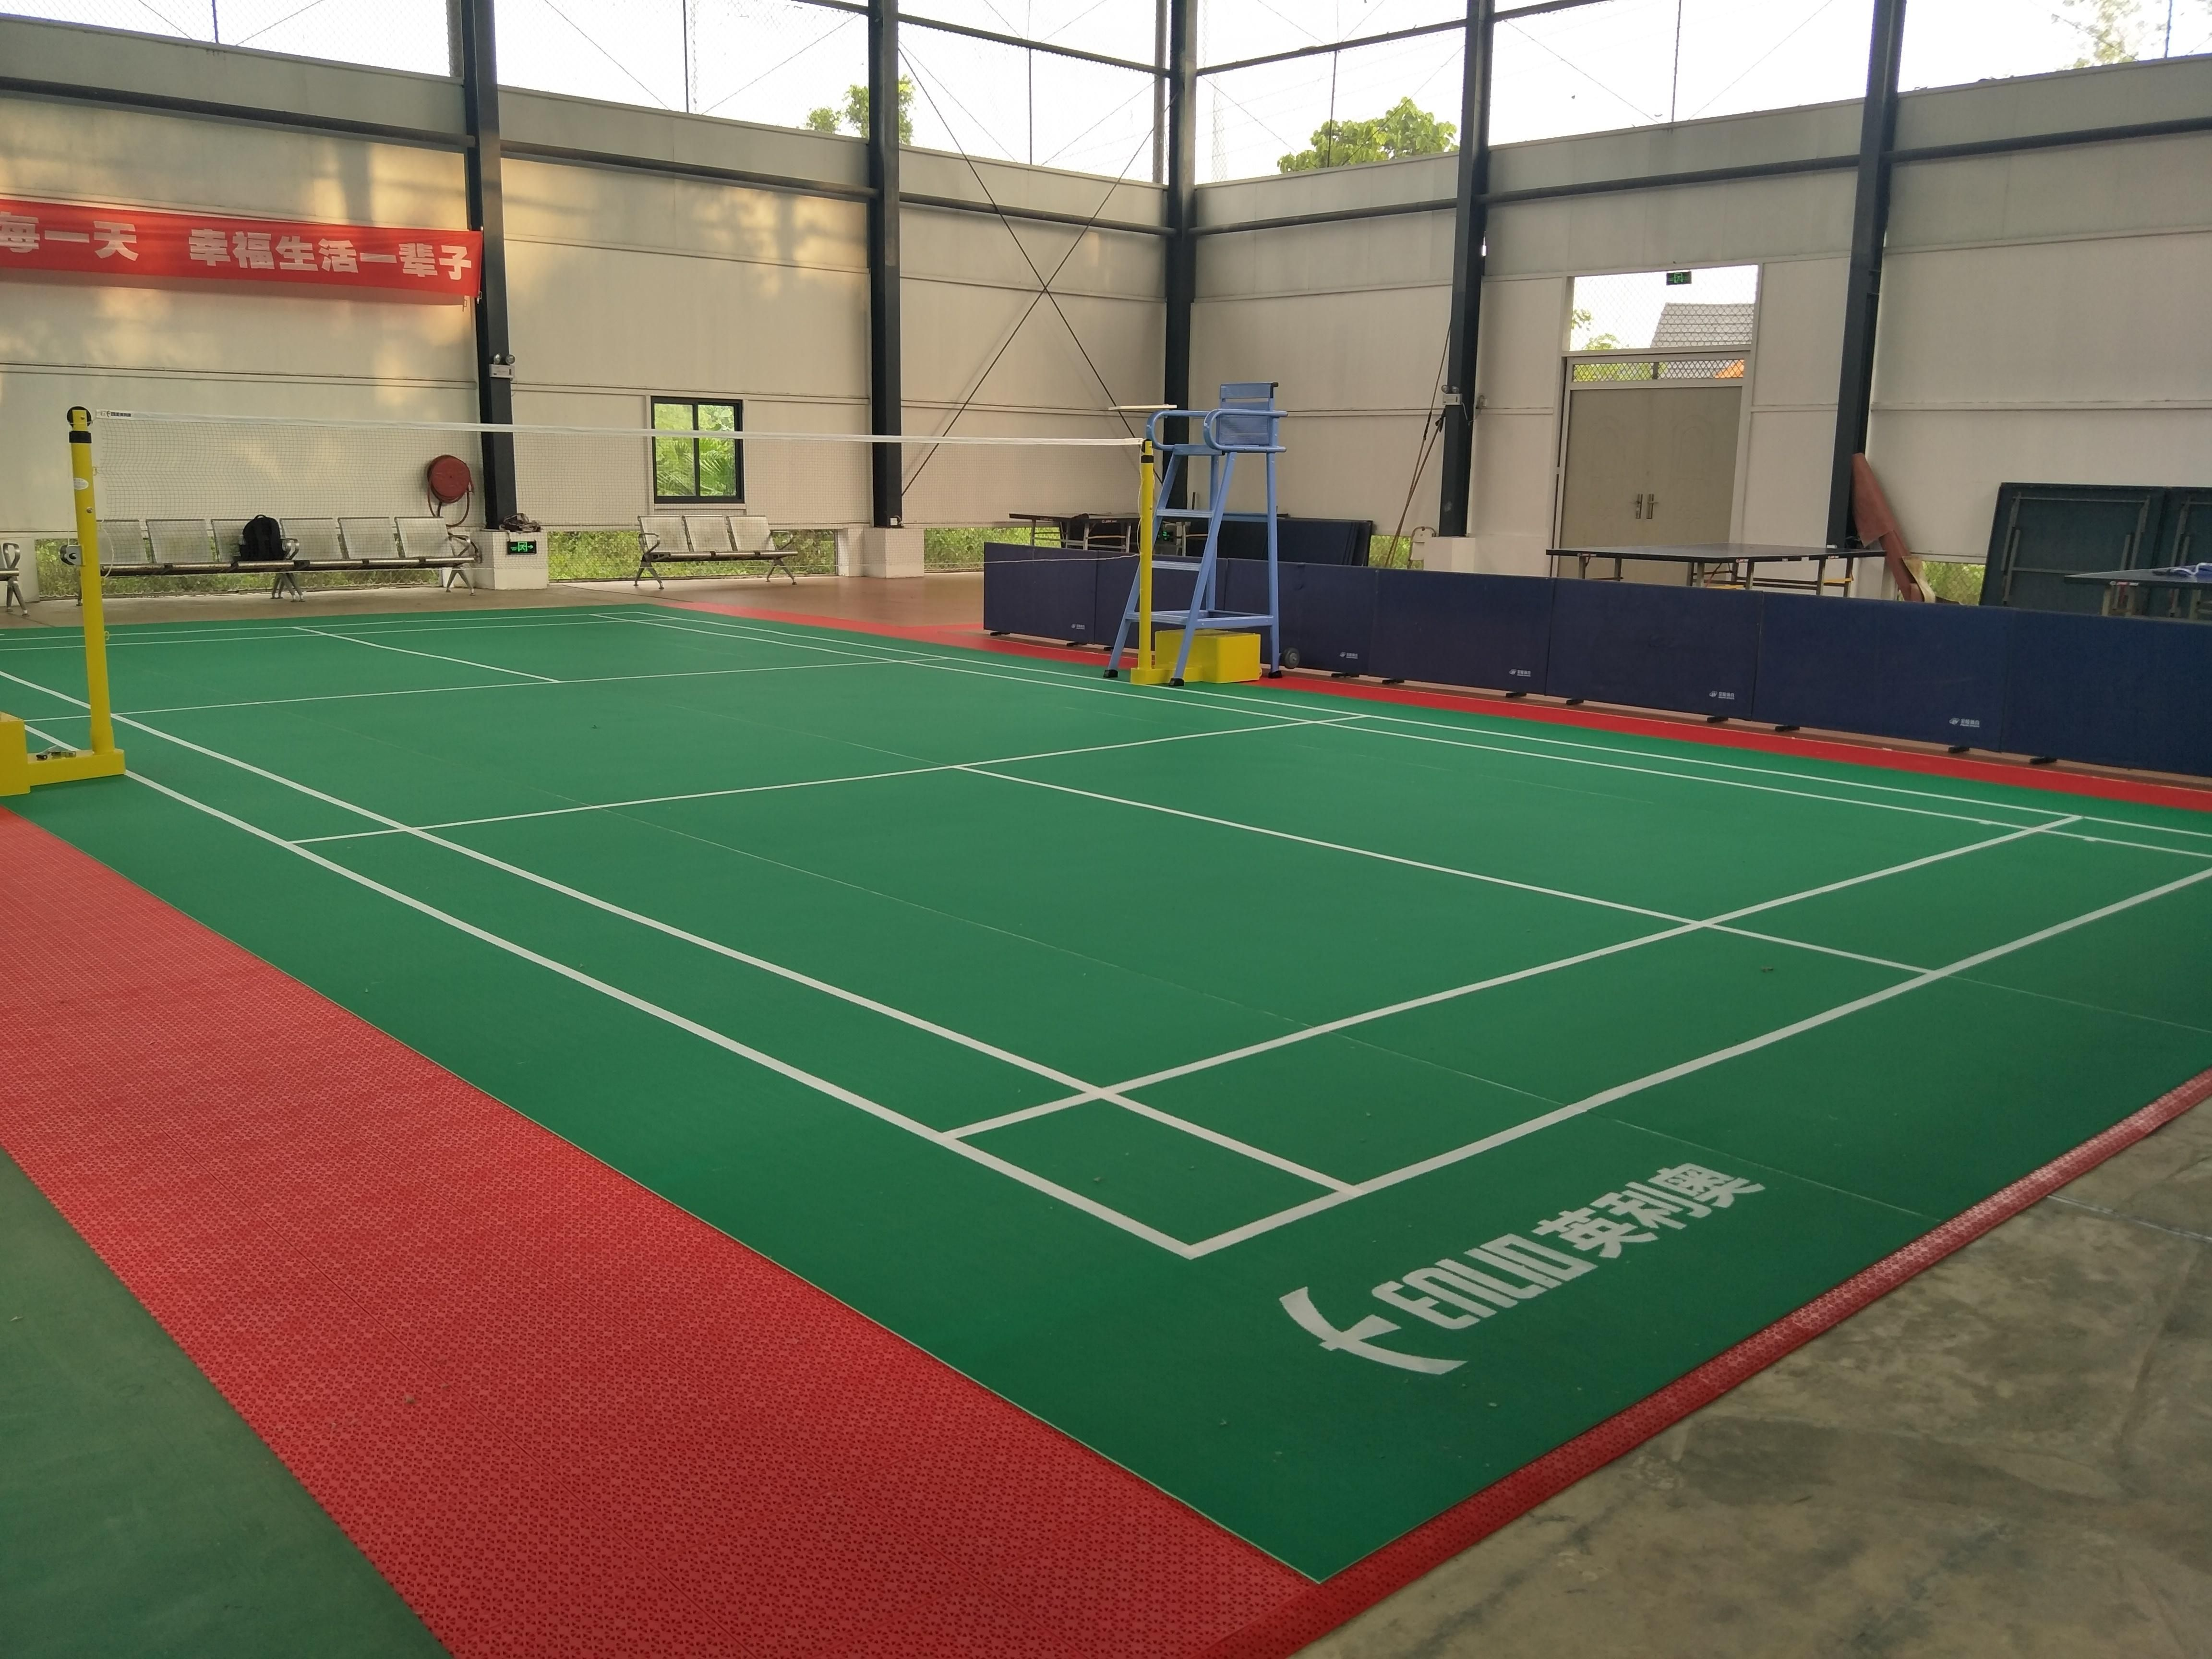 Pvc Flooring Pfp Under Layer Is Designed For High End Badminton Courts Badminton Court Badminton Court